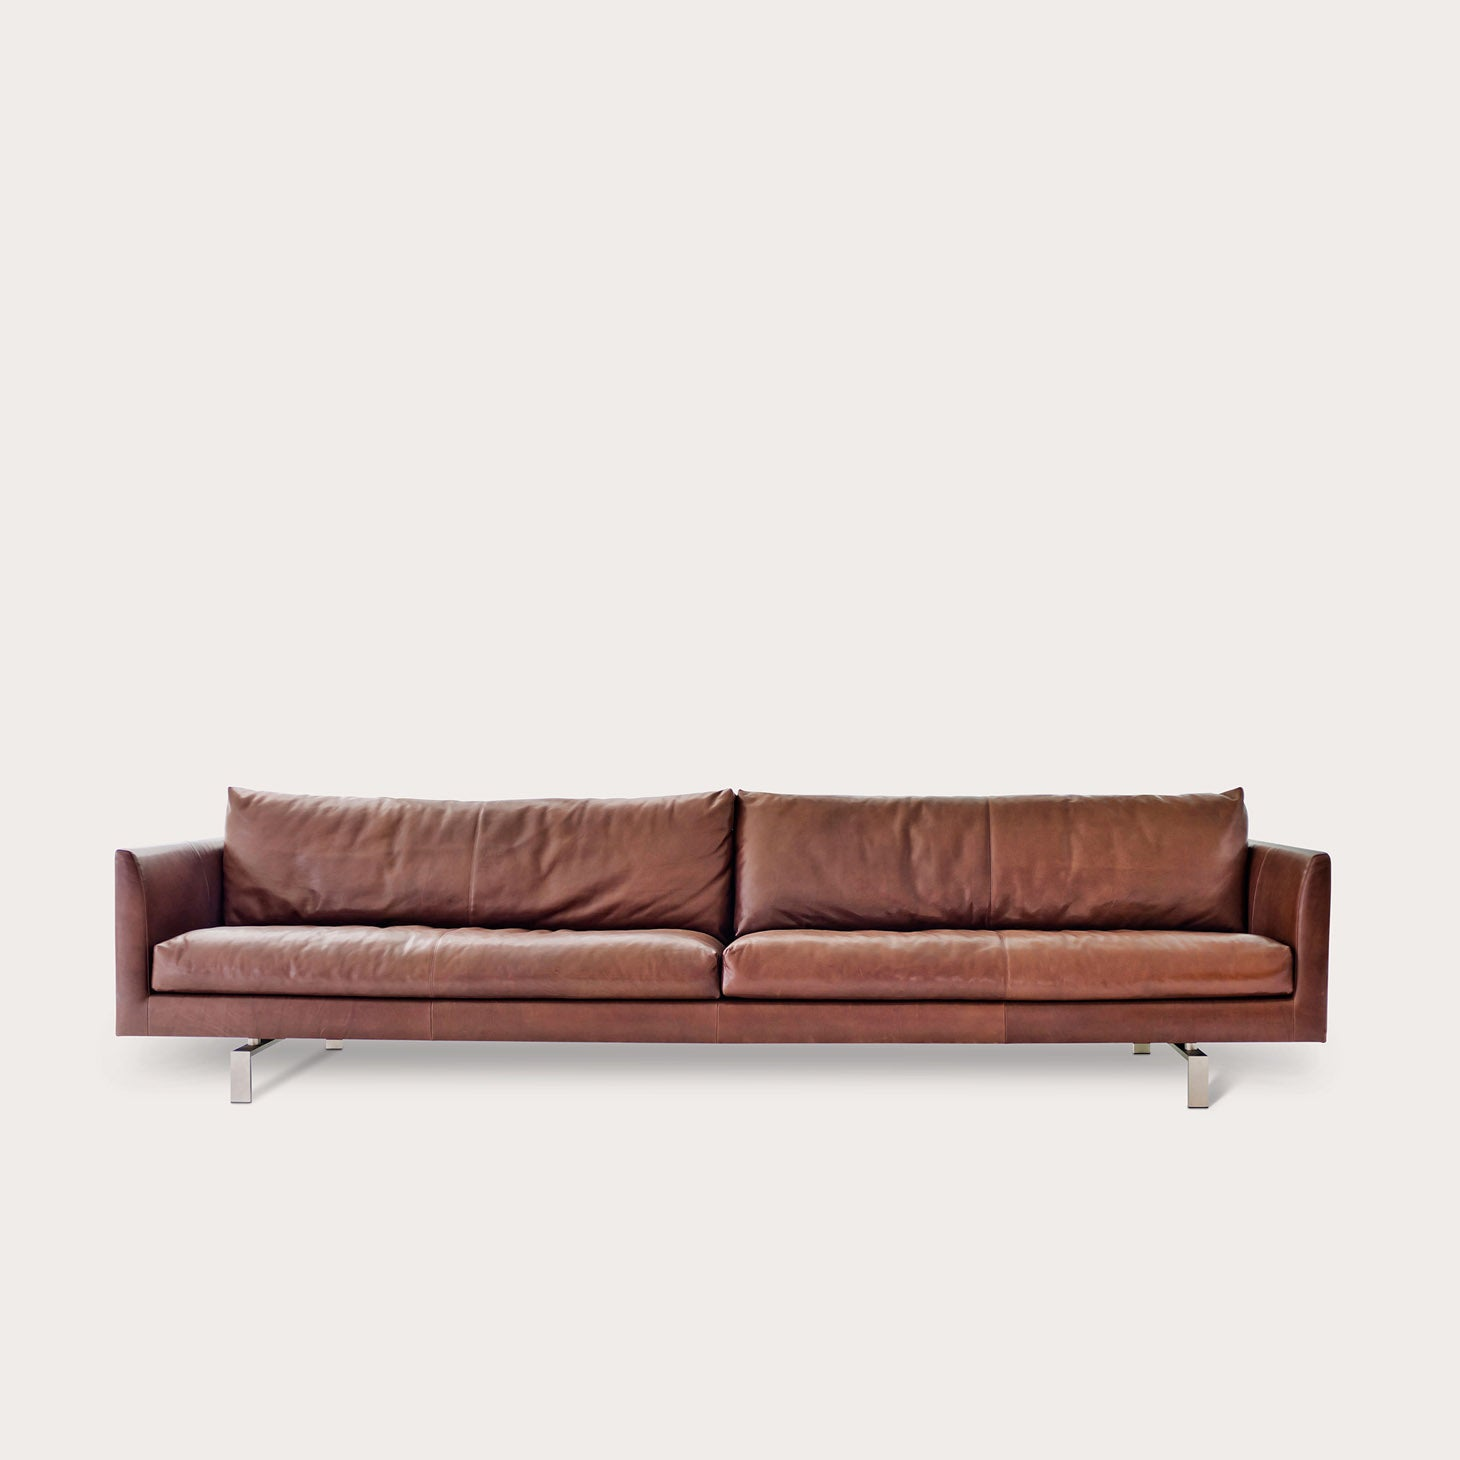 Axel Seating Gijs Papavoine Designer Furniture Sku: 134-240-10056